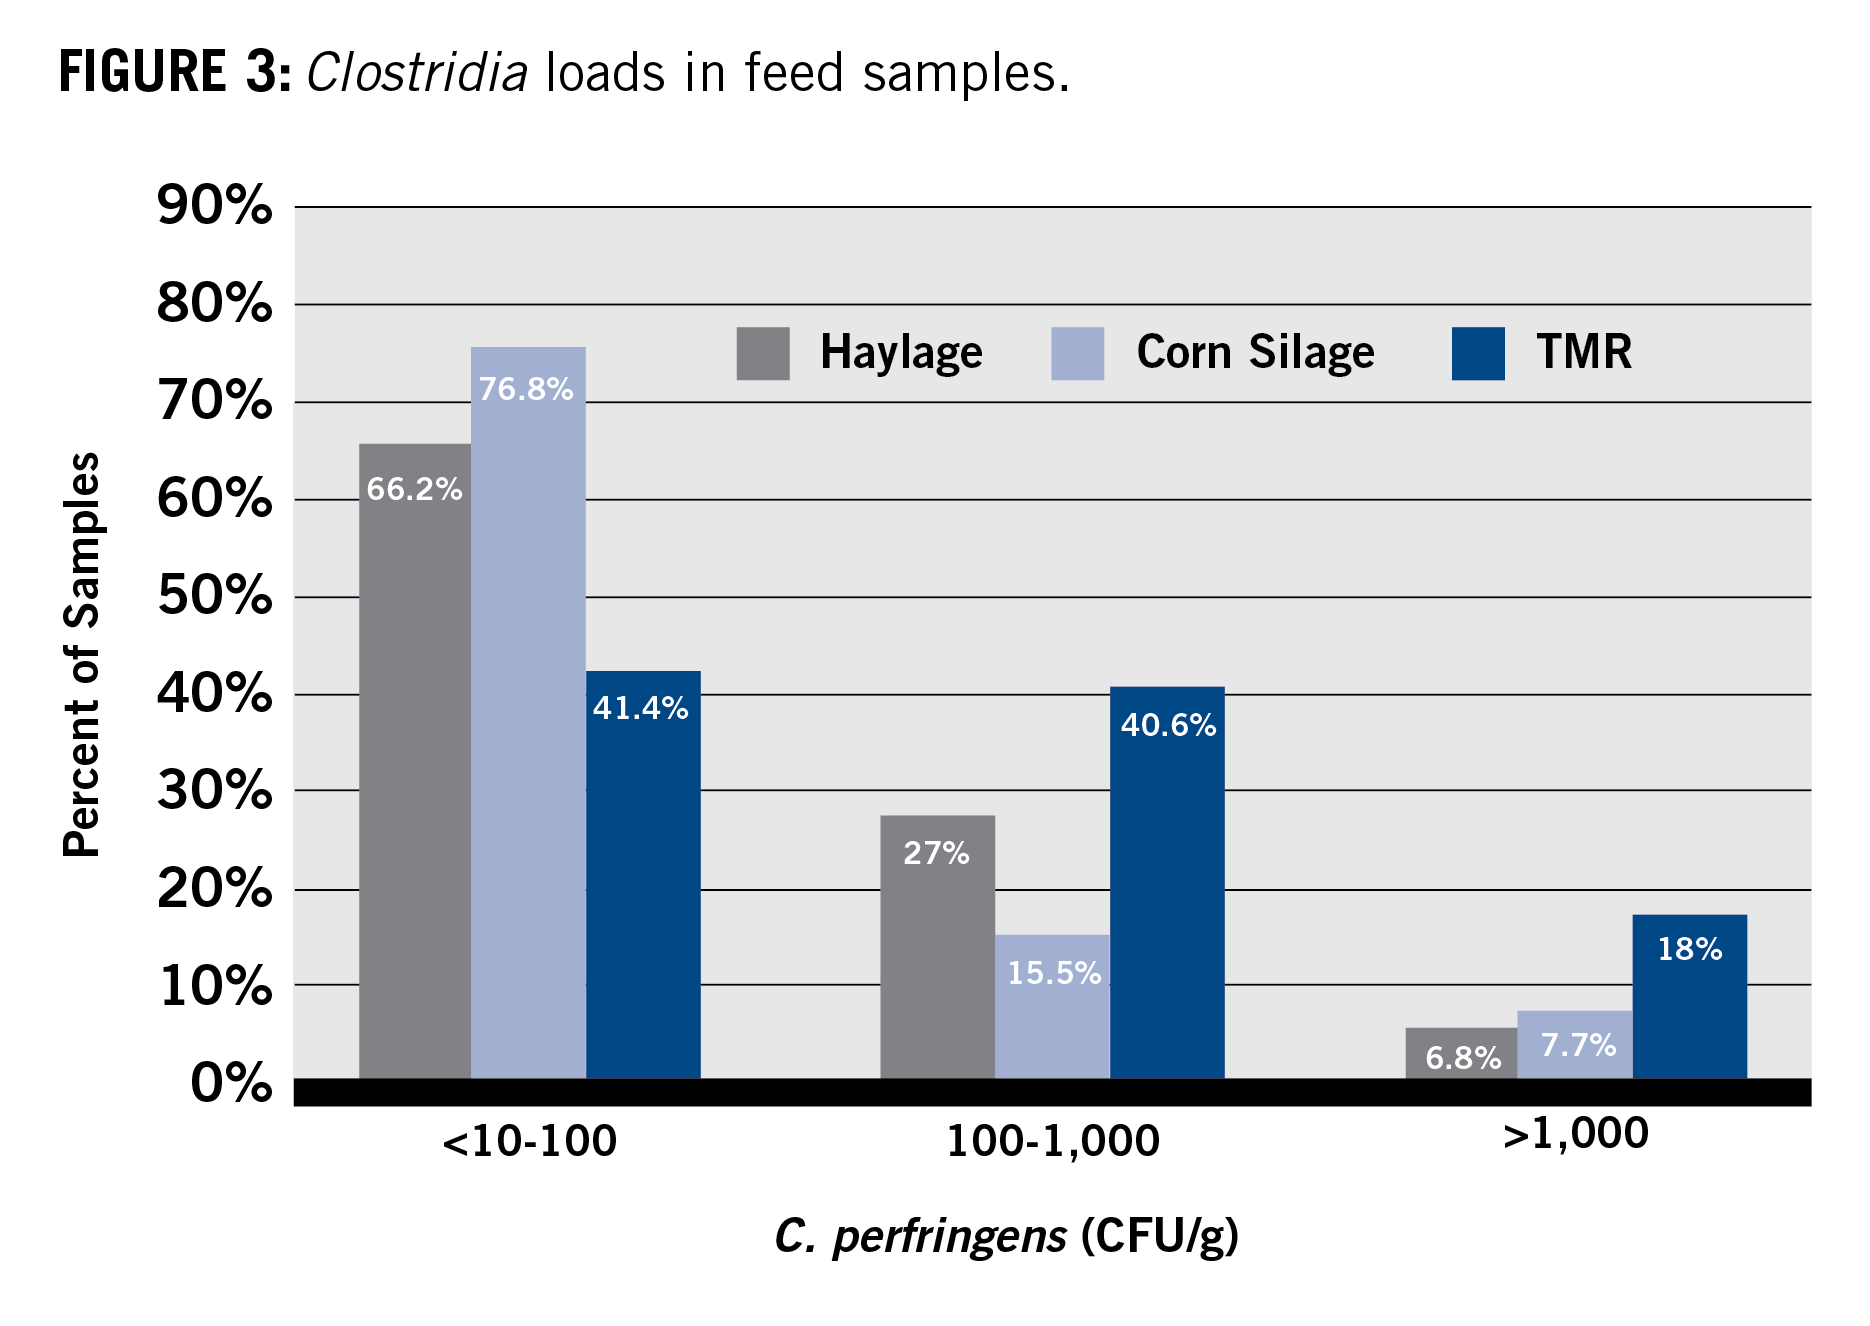 clostridia loads in feed samples chart